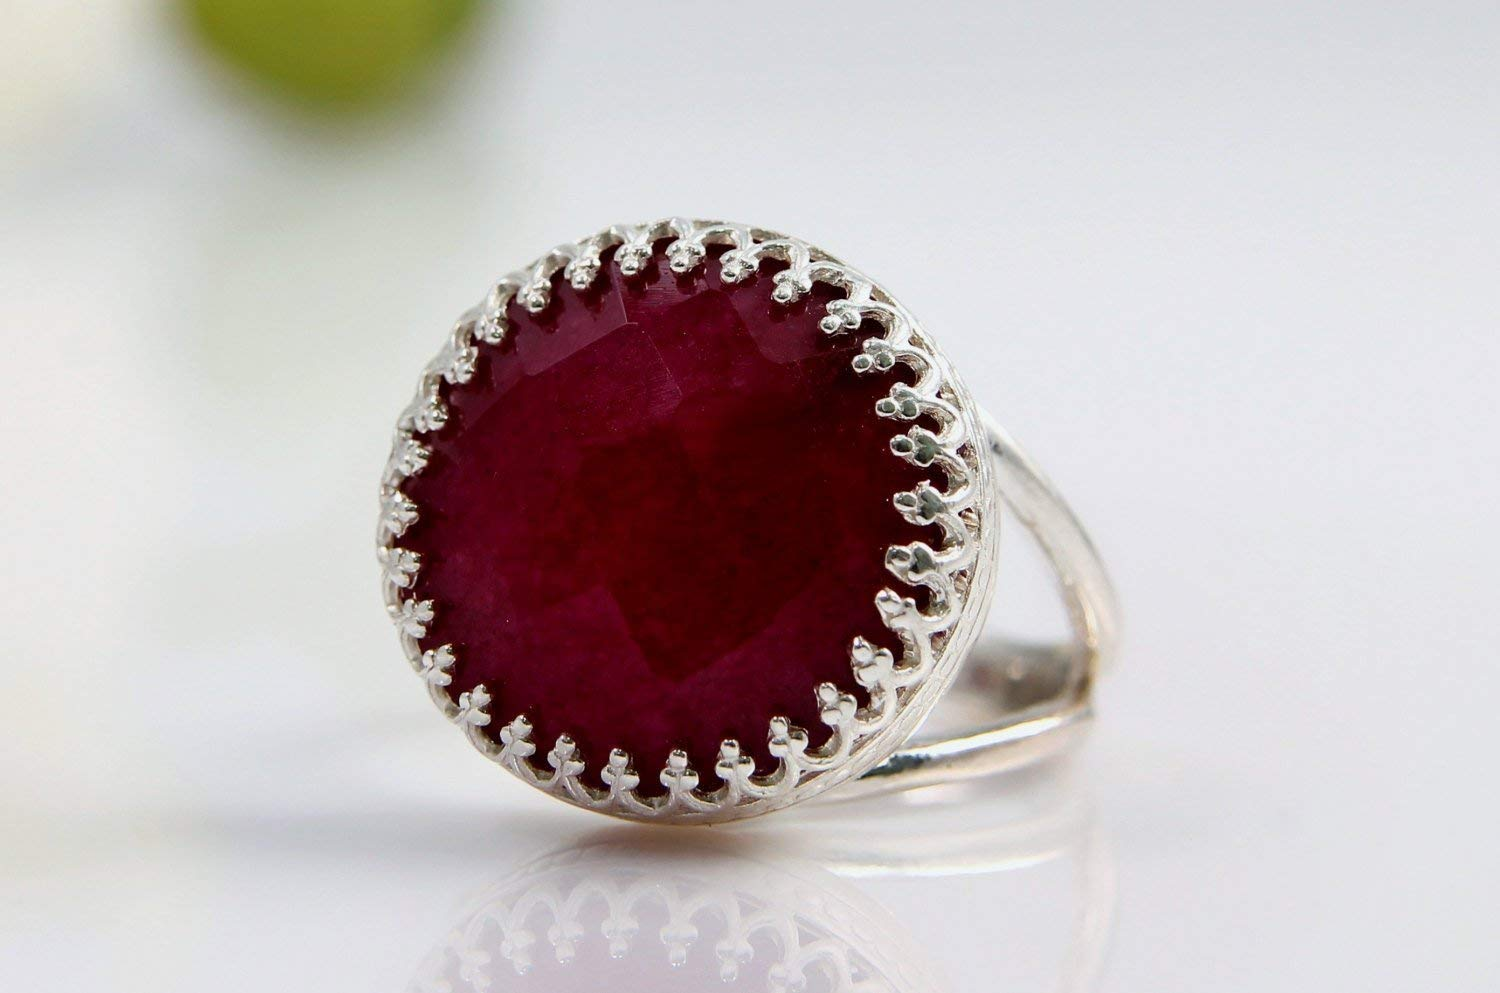 Vintage Ruby Ring by Anemone Jewelry - Silver Rings for Women with Engraving for Casual Wear All Day Long with Free Fancy Ring Box